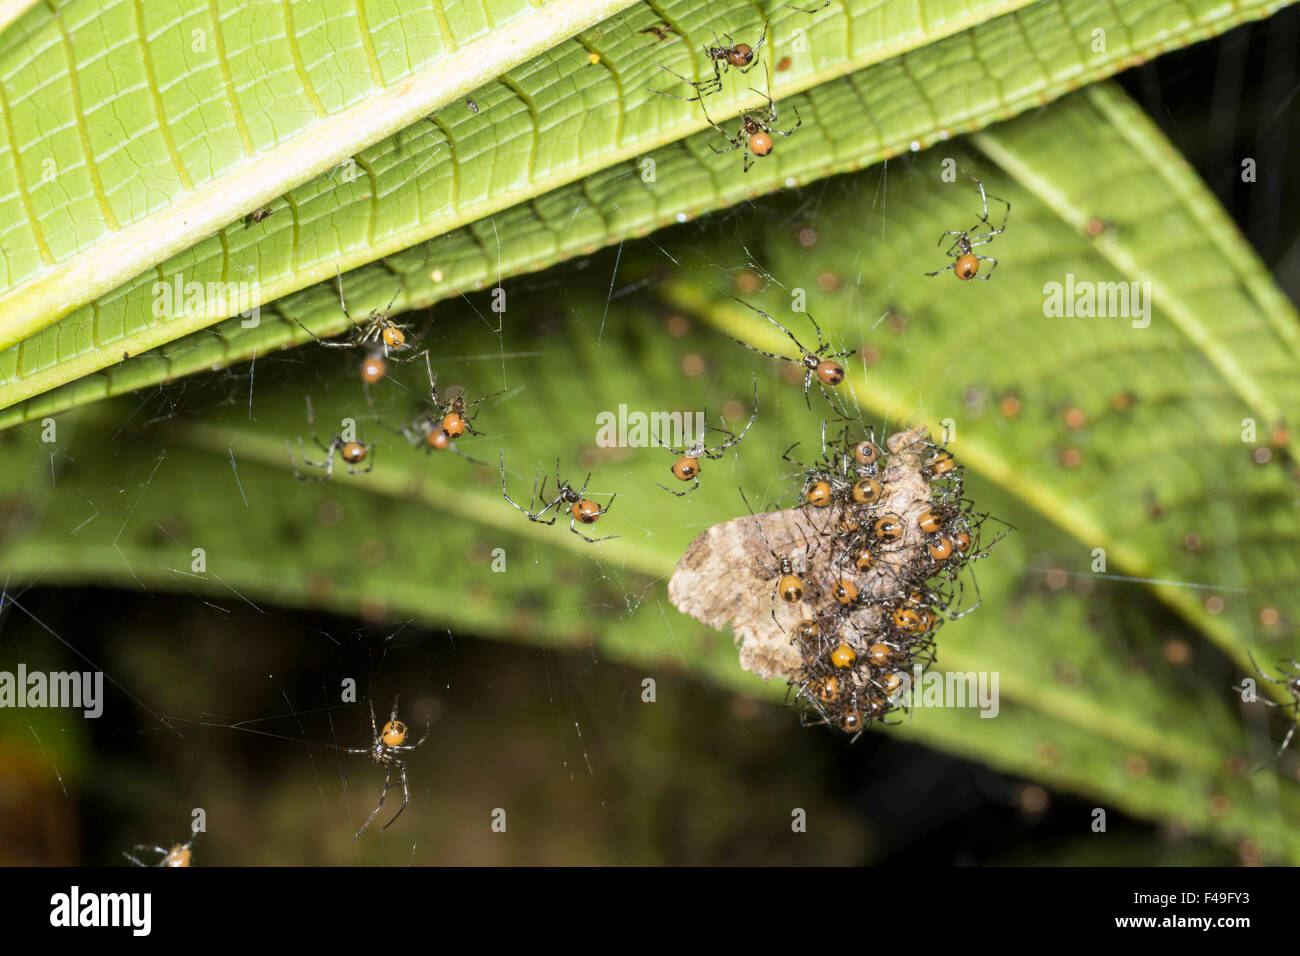 Social spiders (Theridion nigroannulatum) sharing a moth trapped in their web in the rainforest, Ecuador - Stock Image